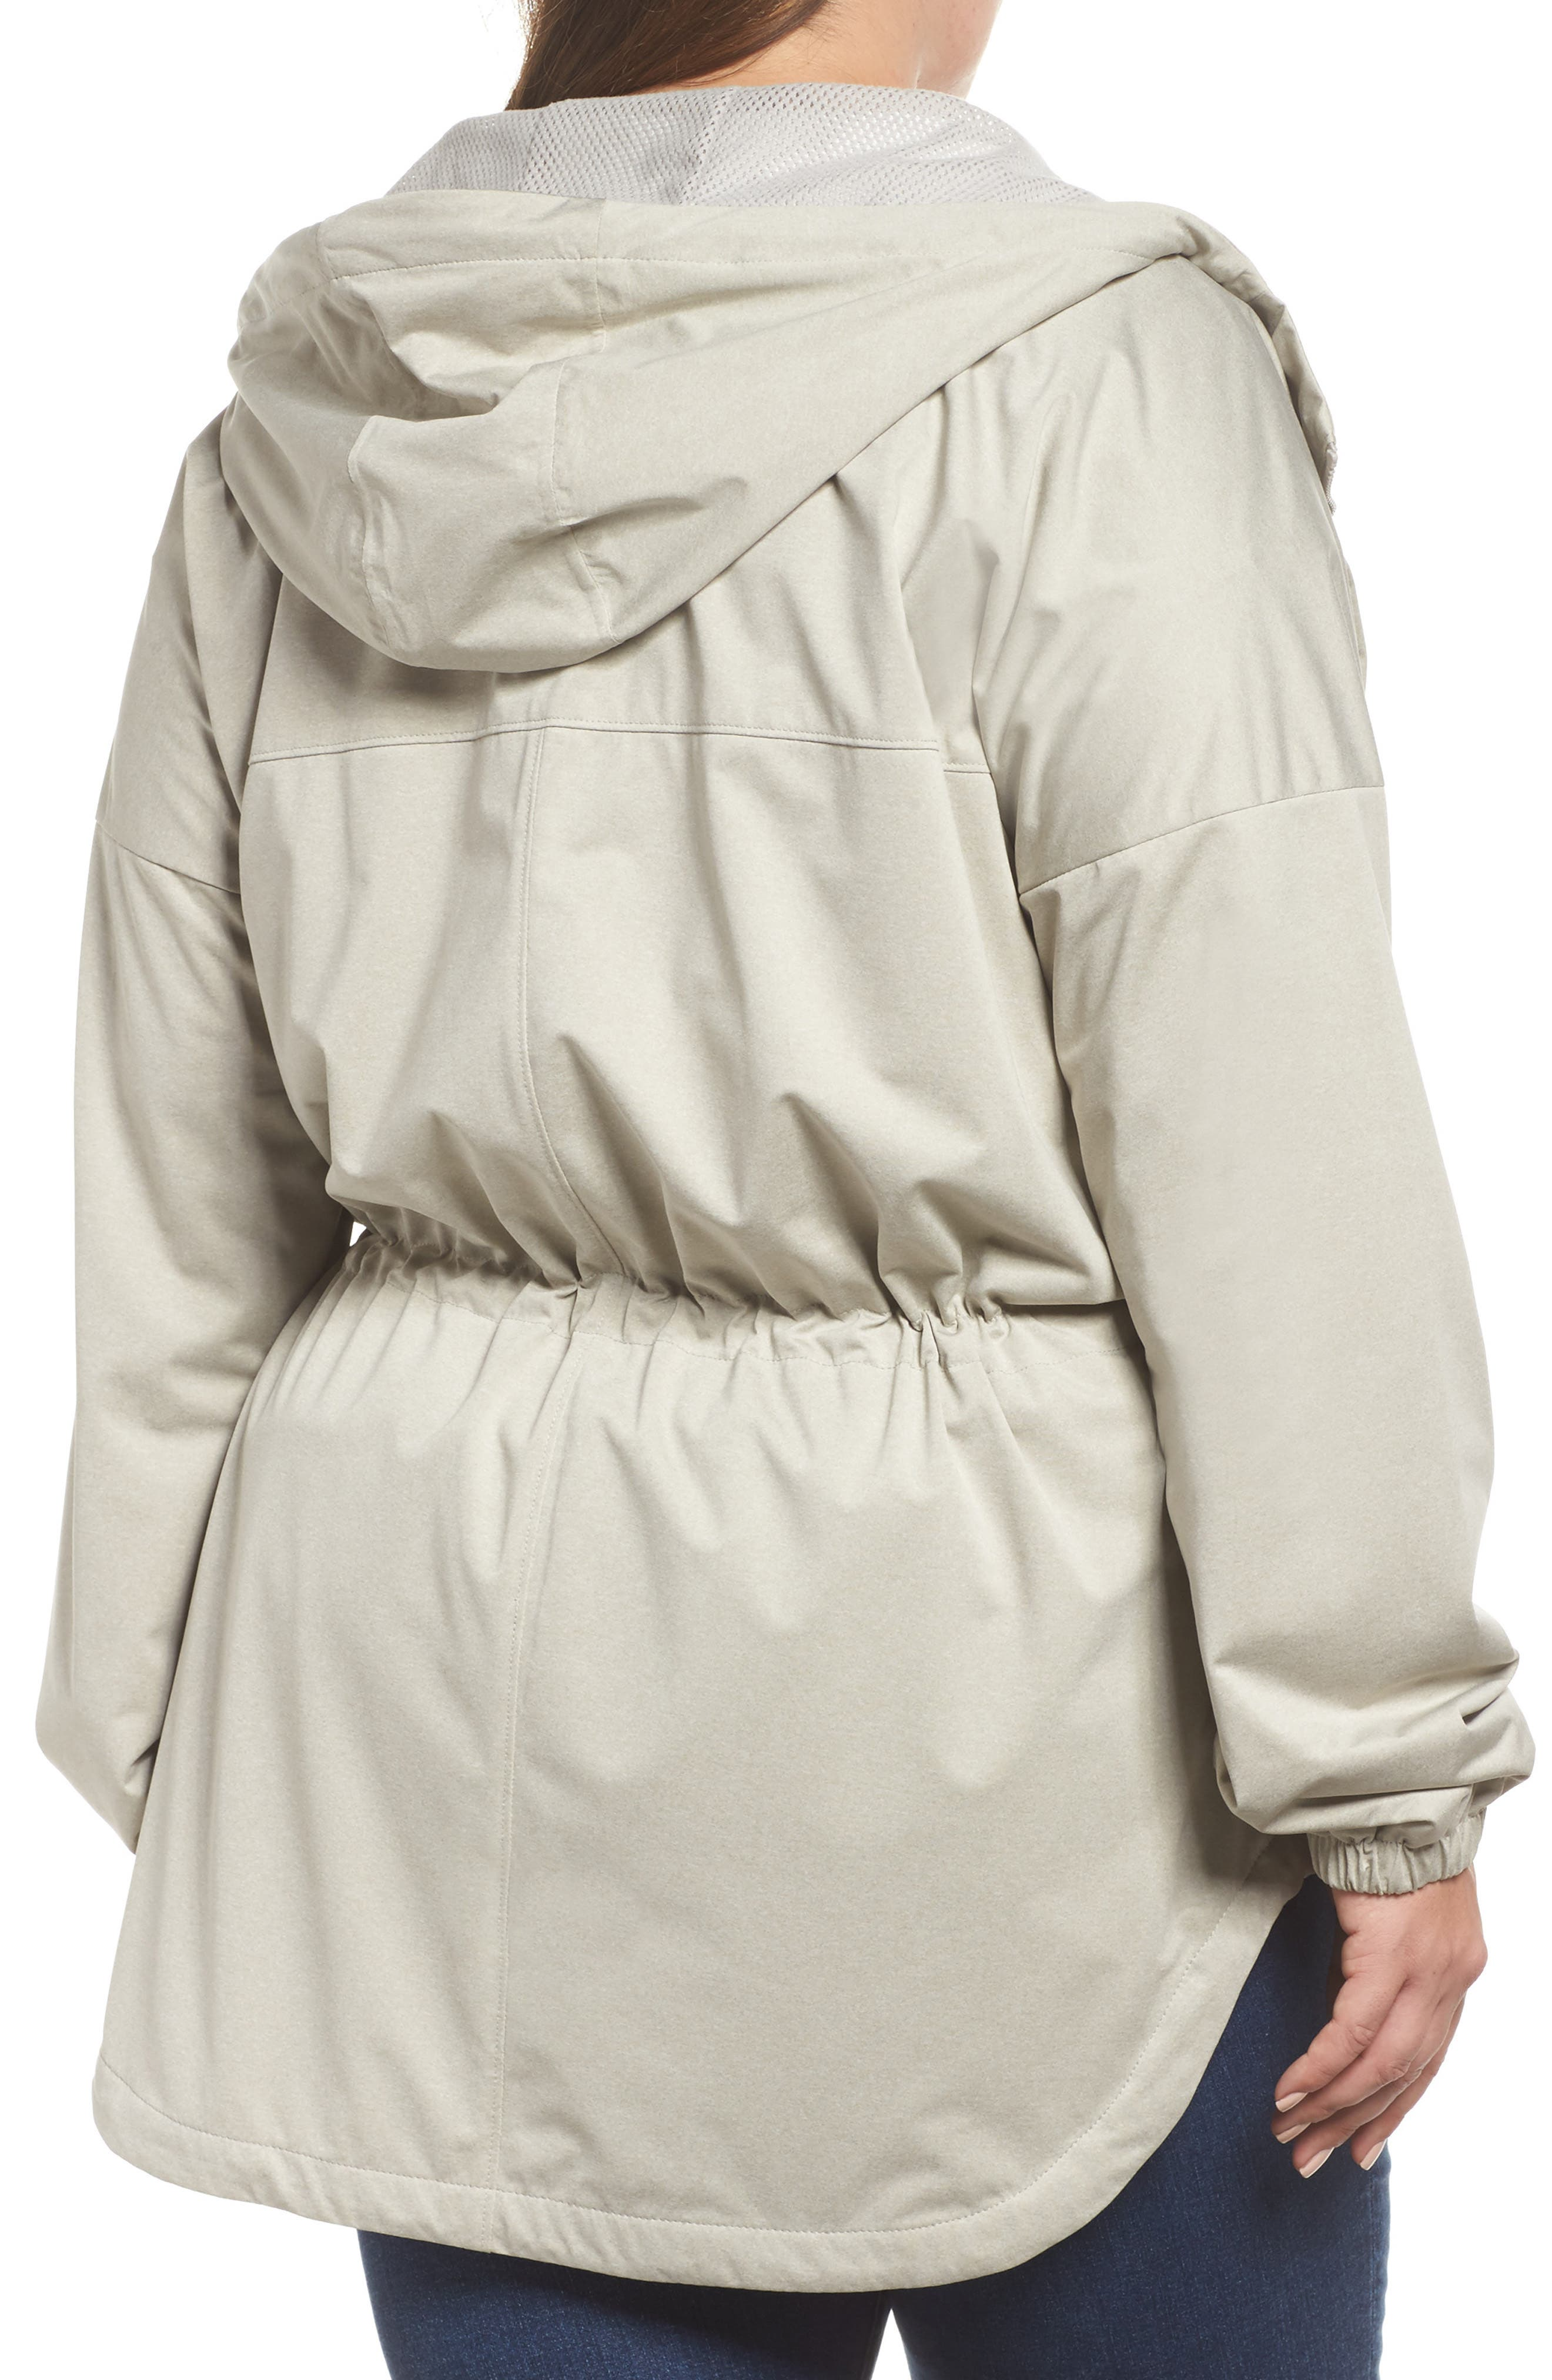 Northbounder Waterproof Hooded Jacket,                             Alternate thumbnail 2, color,                             Flint Grey Heather